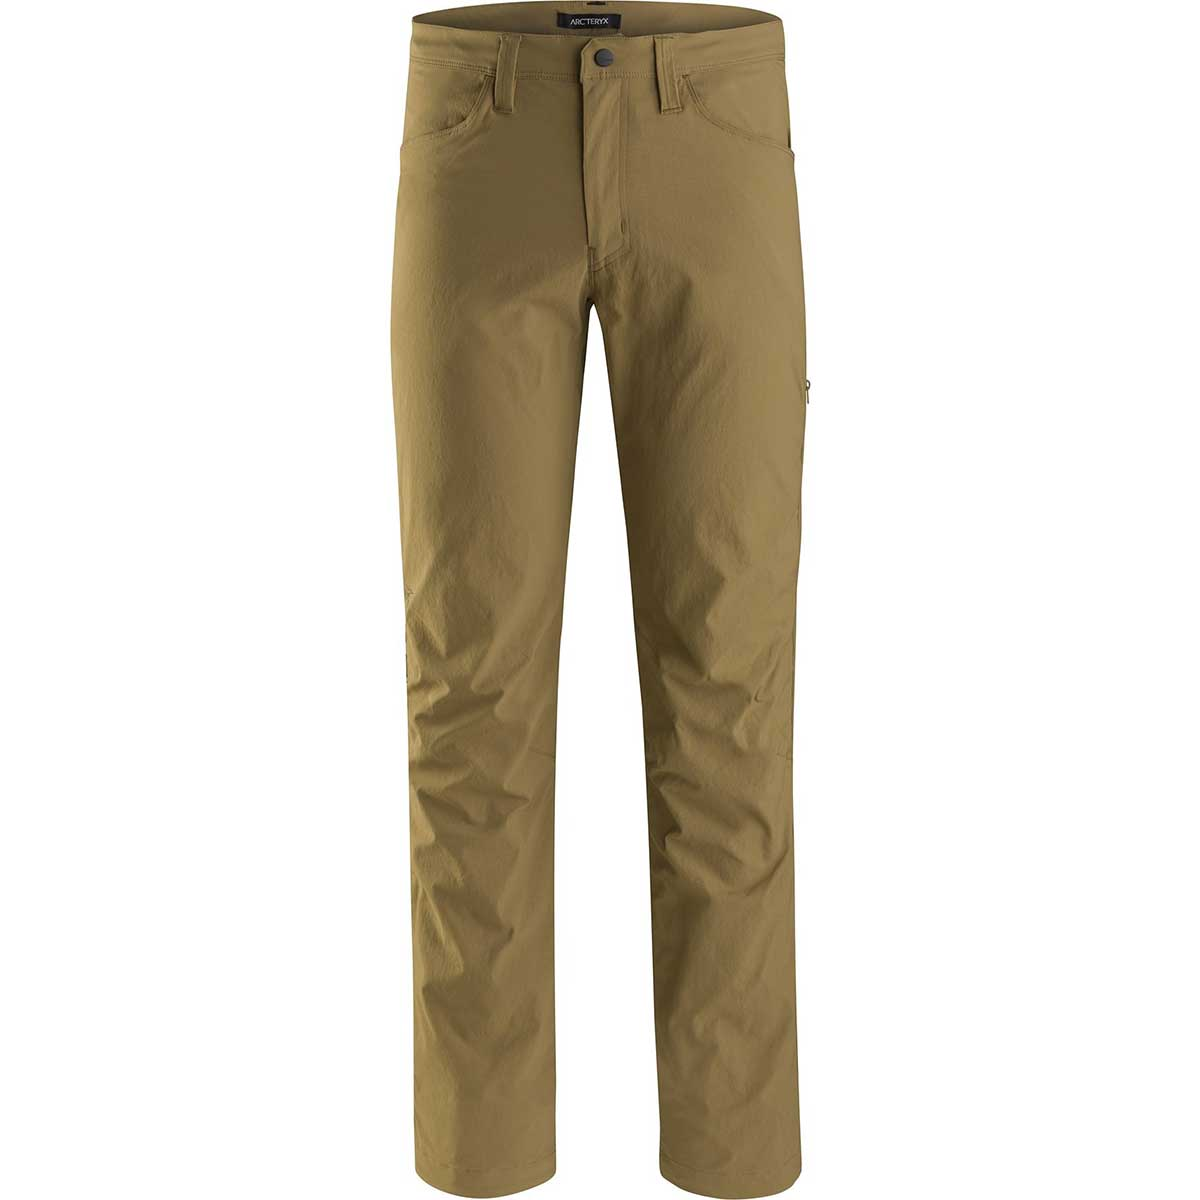 Arcteryx men's Russet Pant in Owami front view